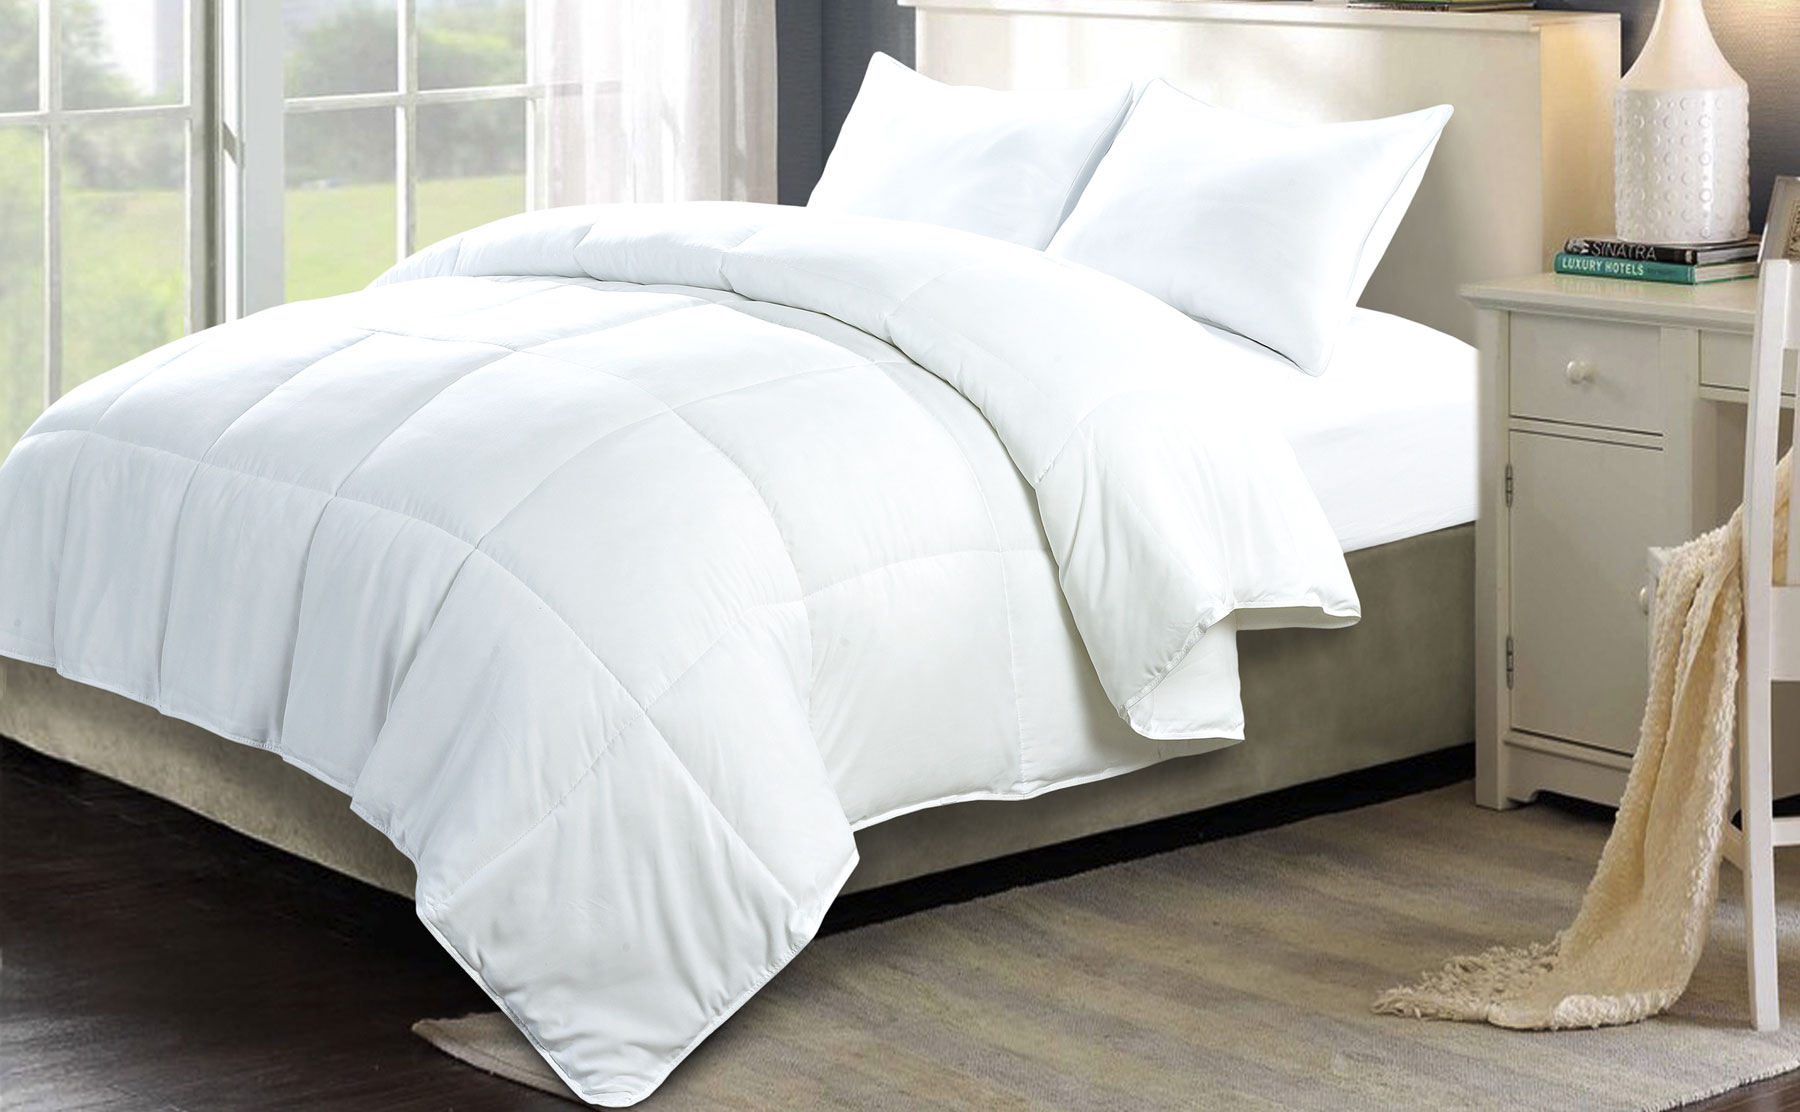 Soft Warm Affordable 3 Piece Comforter Duvet Down